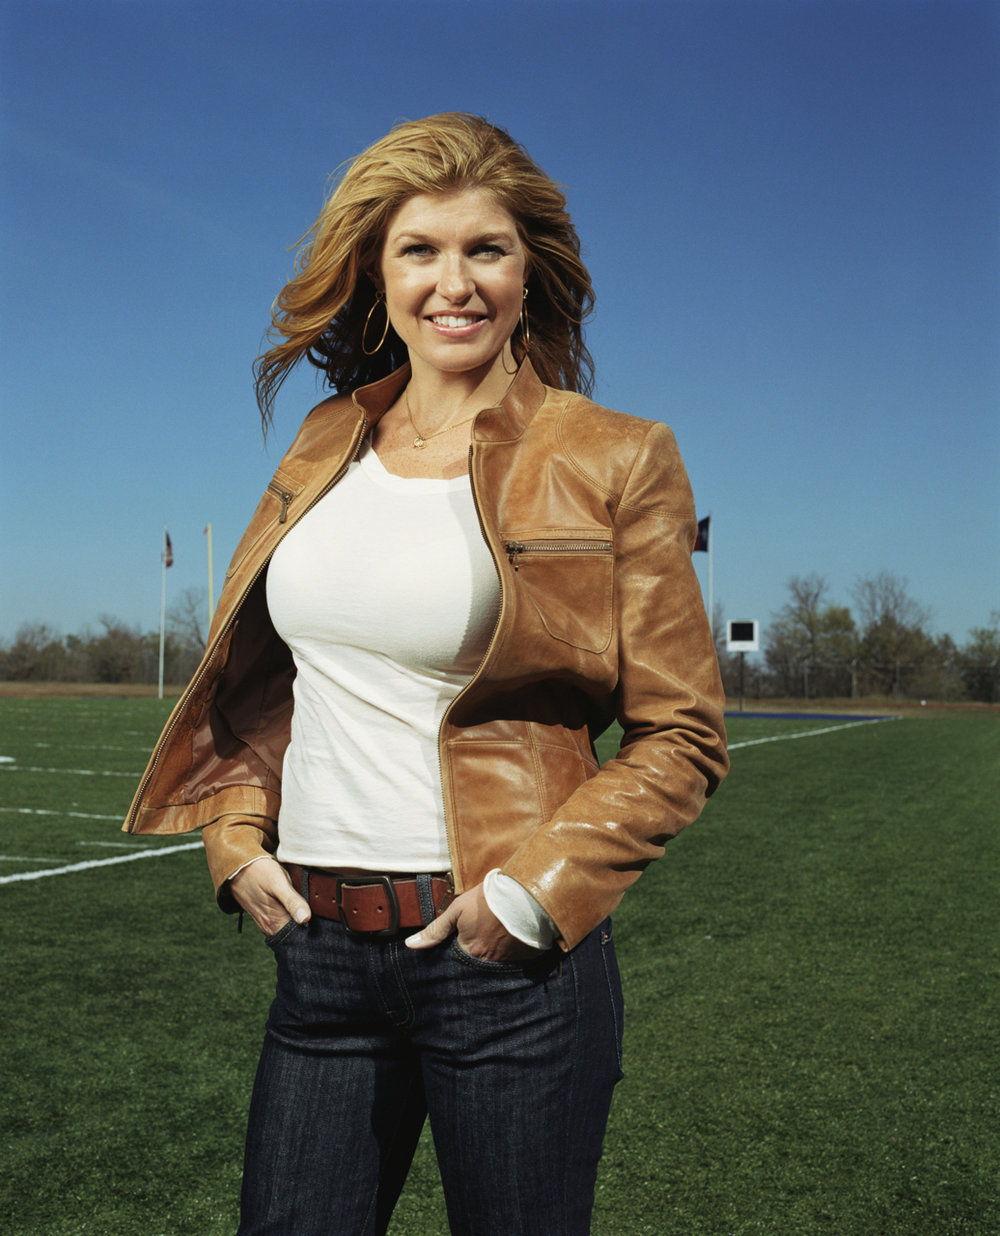 Got a Girl Crush On: Connie Britton as Tami Taylor in Friday Night Lights So I know I'm way late on the FNL band-wagon, but no matter since it's streaming on Netflix! Who knew I'd give a damn about high school football (well, not really, but it has admittedly gotten me teary-eyed in parts)?  That said, I've discovered that even though at face value it's all male-centered and sports, there are a ton of really strong female characters. Par examplé: Tami Taylor (wife of lead, couch Eric Taylor). The show touches on school funding, racism, drugs, abortion, and lack of economic opportunities. And I can't help but think how Tami and Eric Taylor might be one of the most realistically portrayed married couple on tv. They fight. They piss each other off. But they reconcile knowing they are a team of two. And Tami doesn't take no guff (no spoilers y'all I'm only on season 3).  Connie Britton gives a really heartfelt interview on Fresh Air on NPR about the freedoms given to her as an actress and the importance of the show on American television. Totally worth a listen.